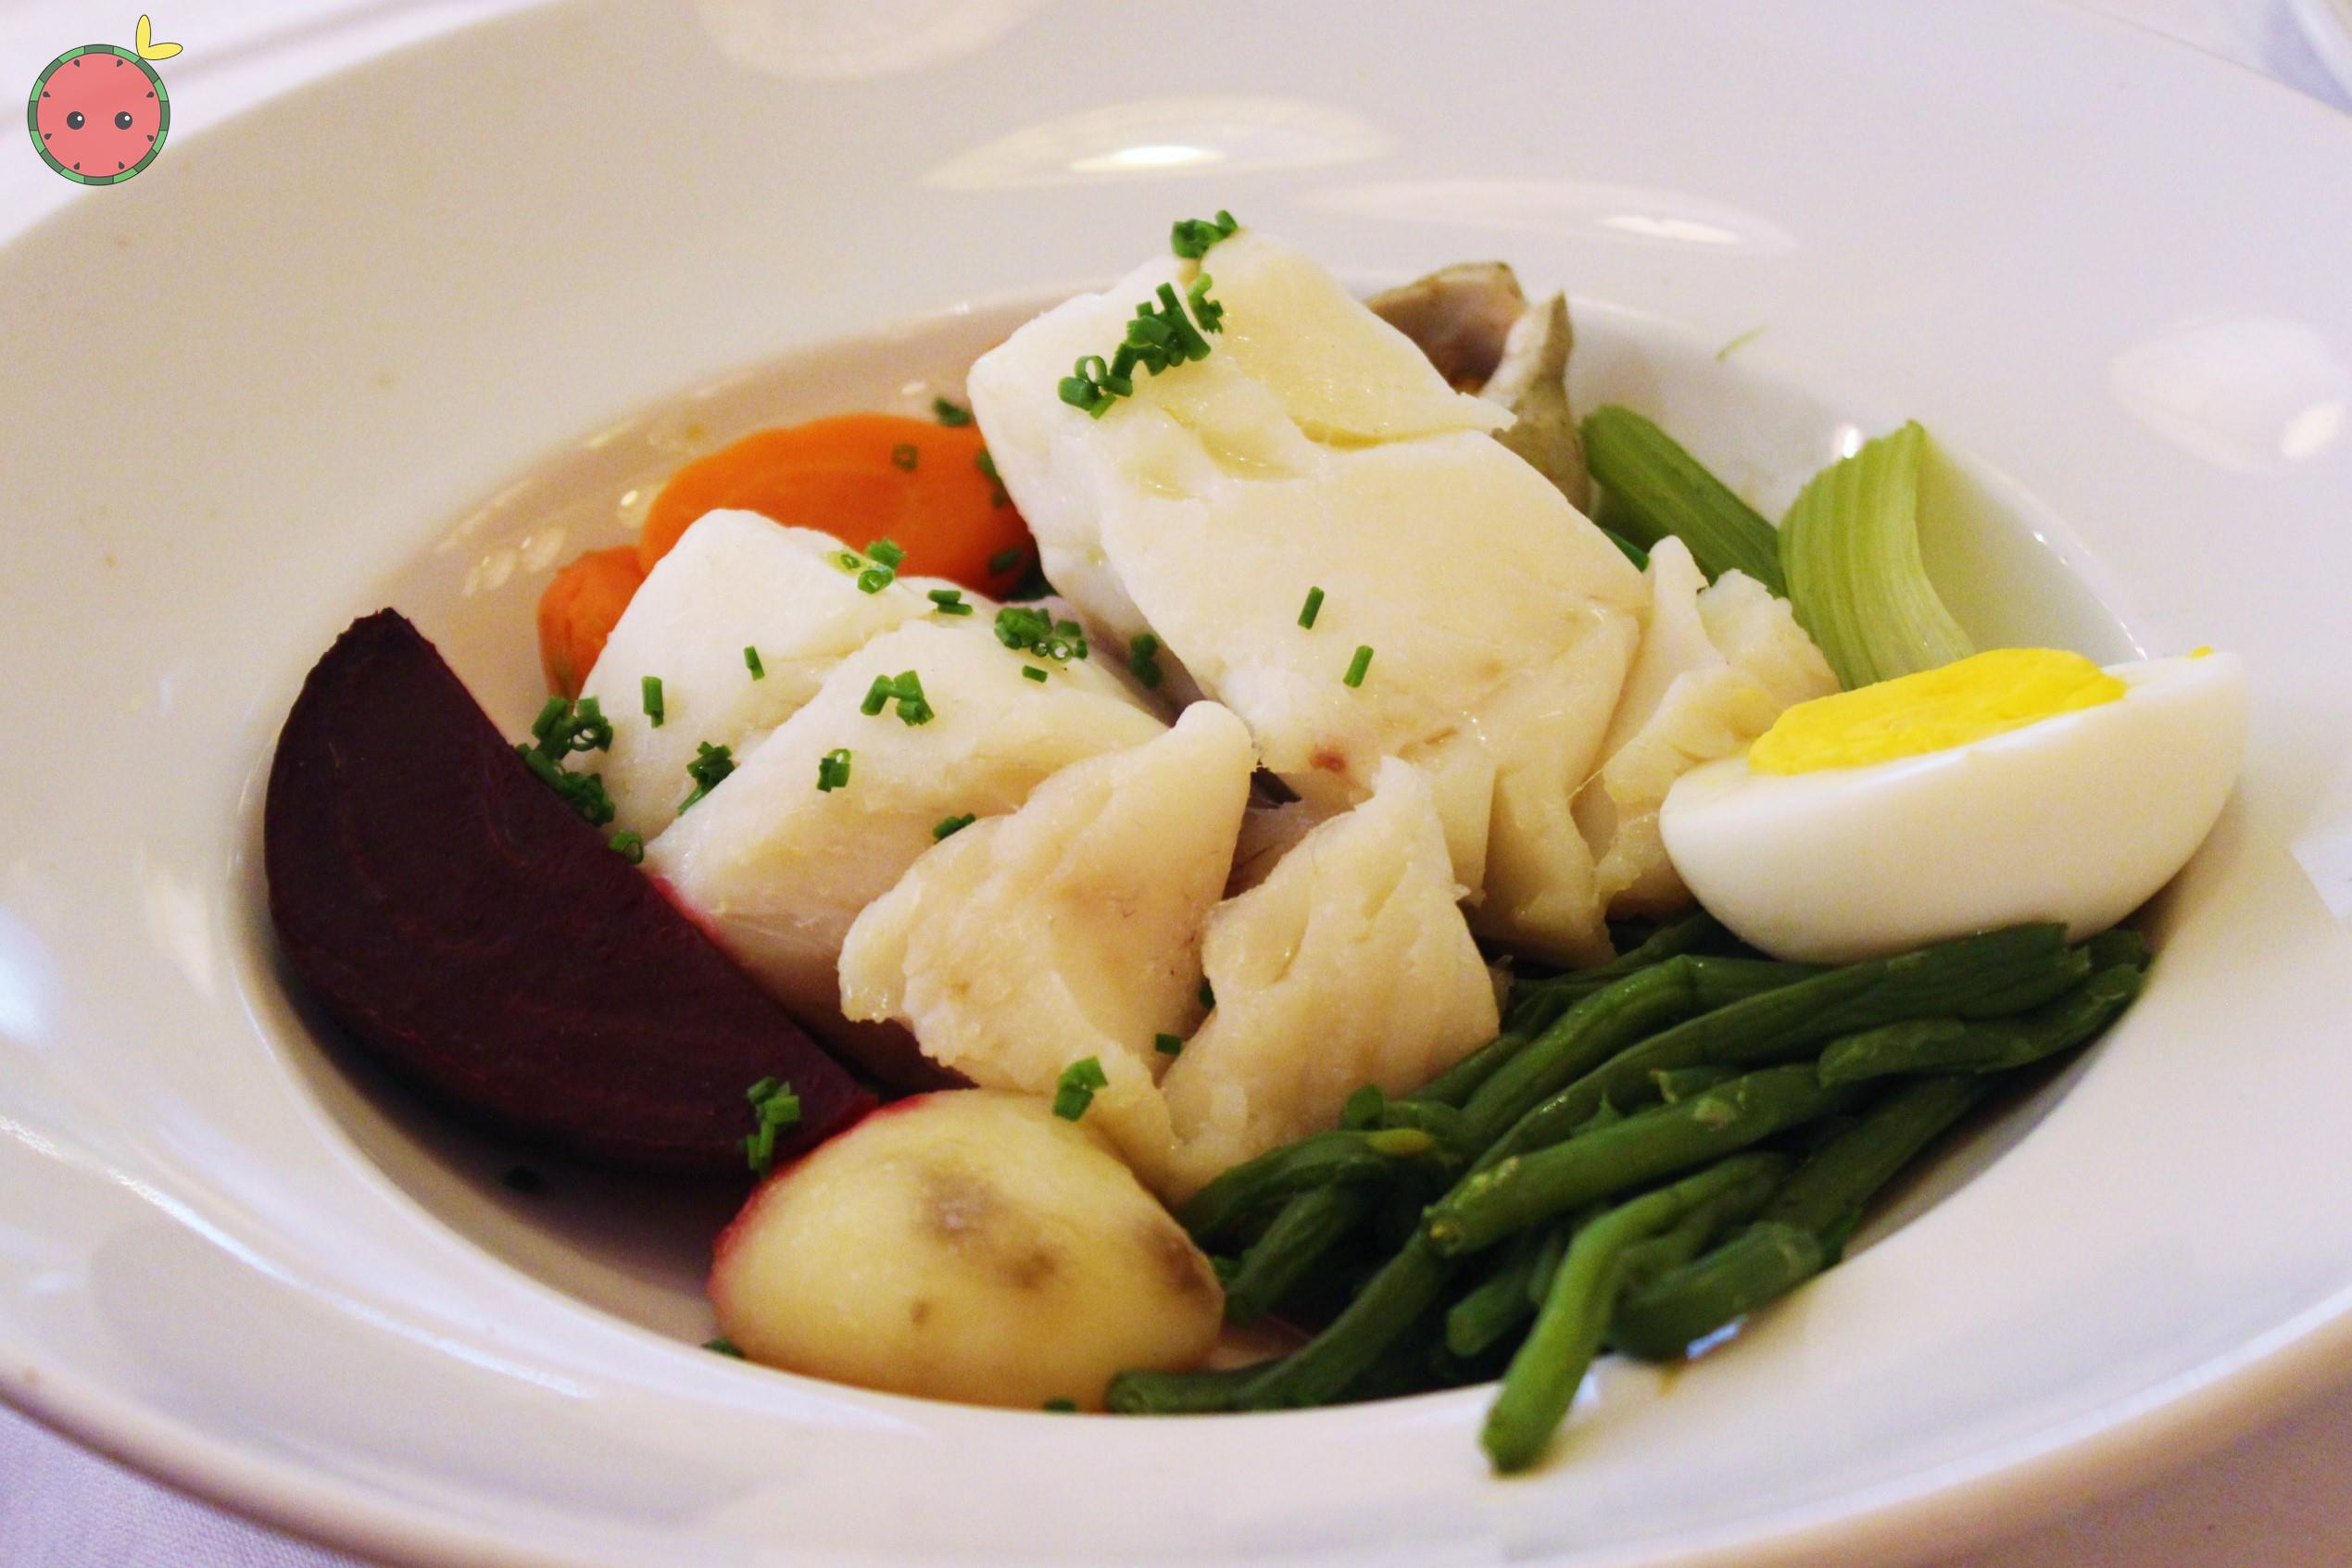 Steamed_wild_cod_with_vegetables_and_aïoli